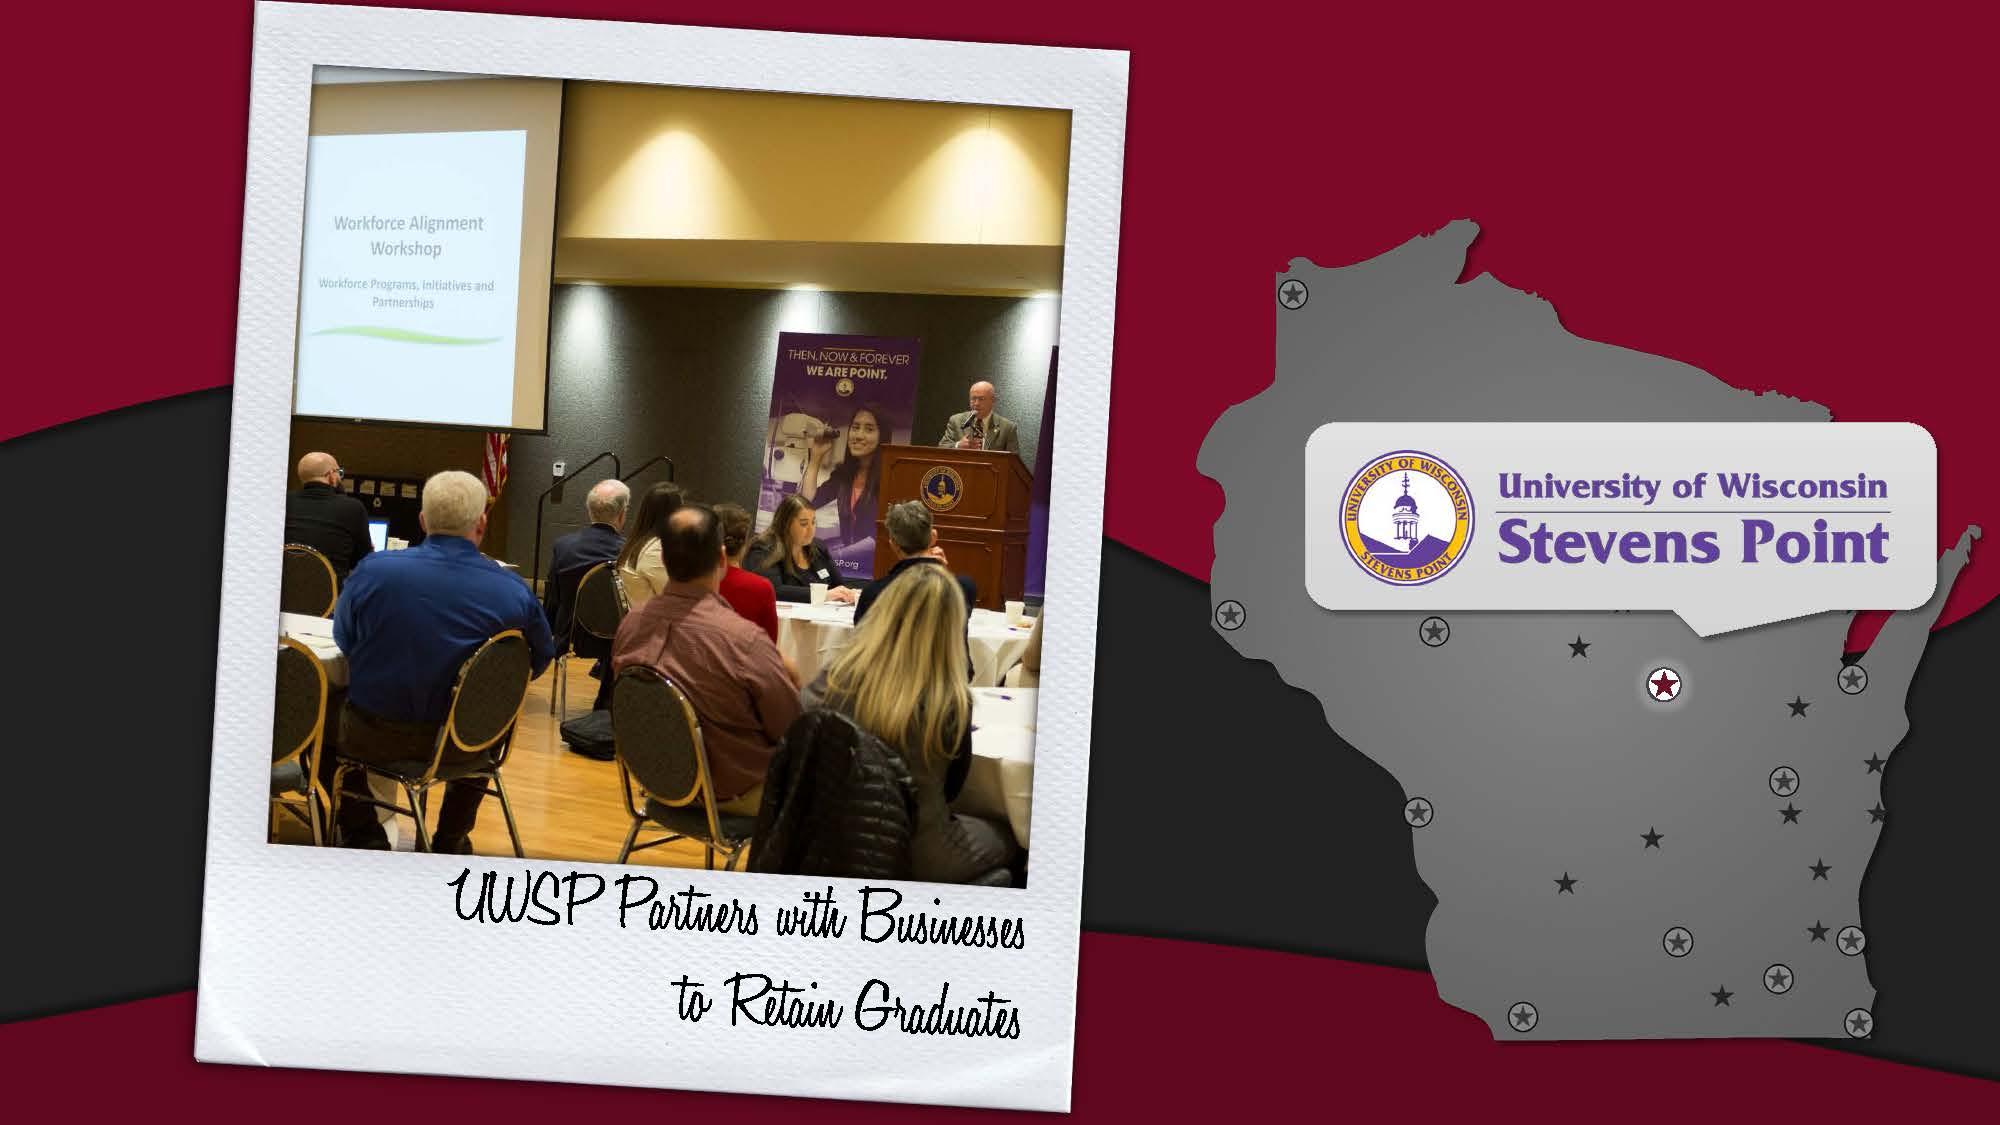 news from around the uw system news uwsp partners businesses to retain graduates uw stevens point